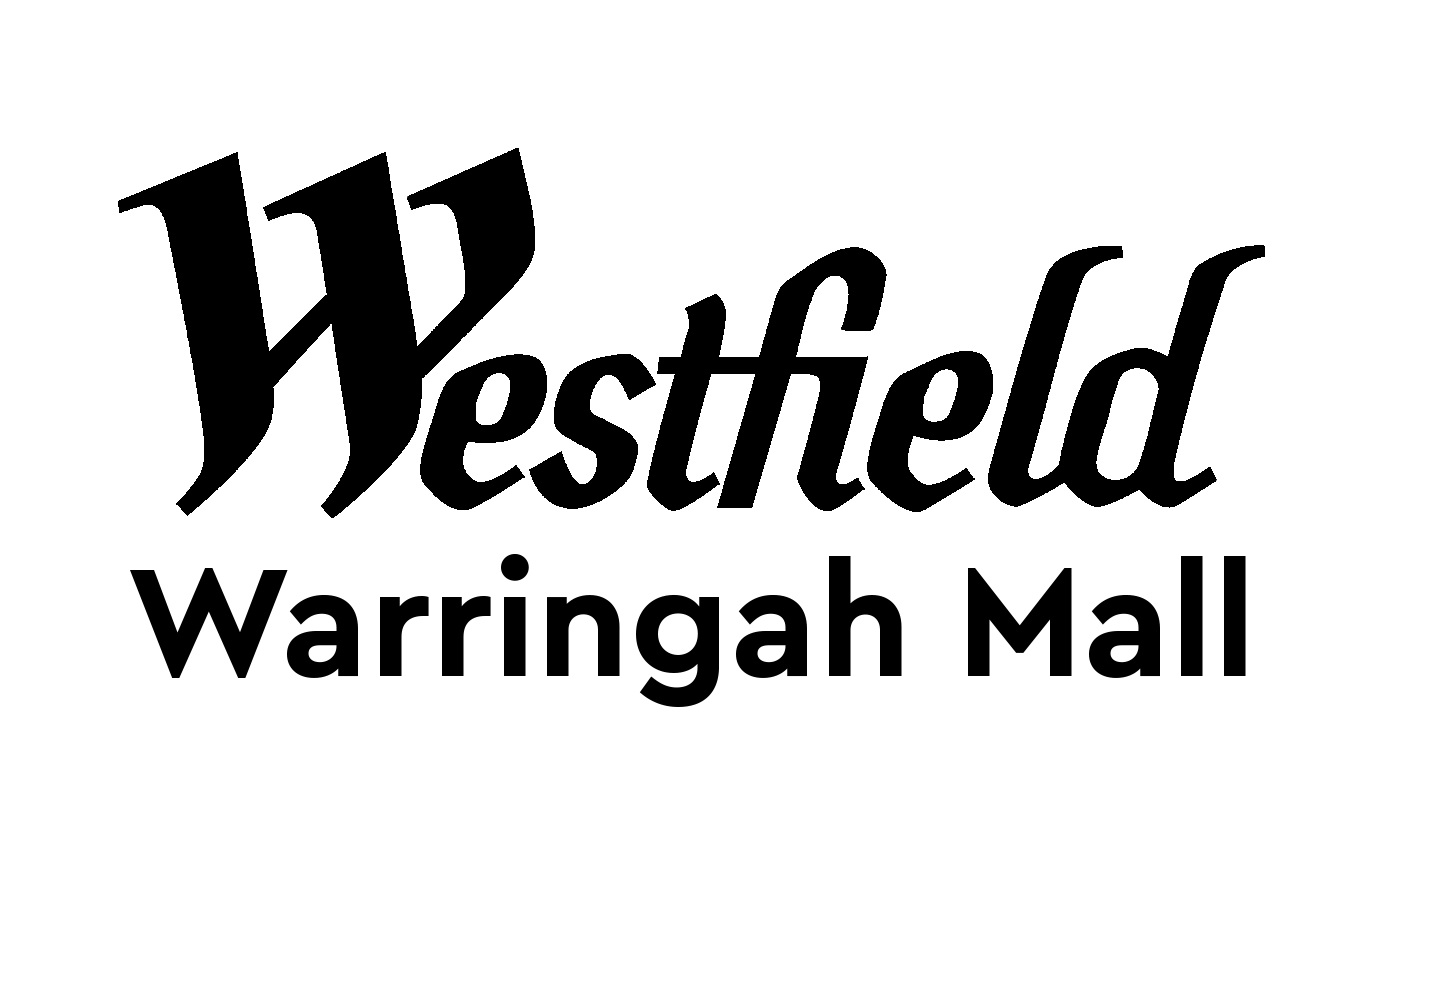 Warringah-Mall-logo-2000x2000 (1).png